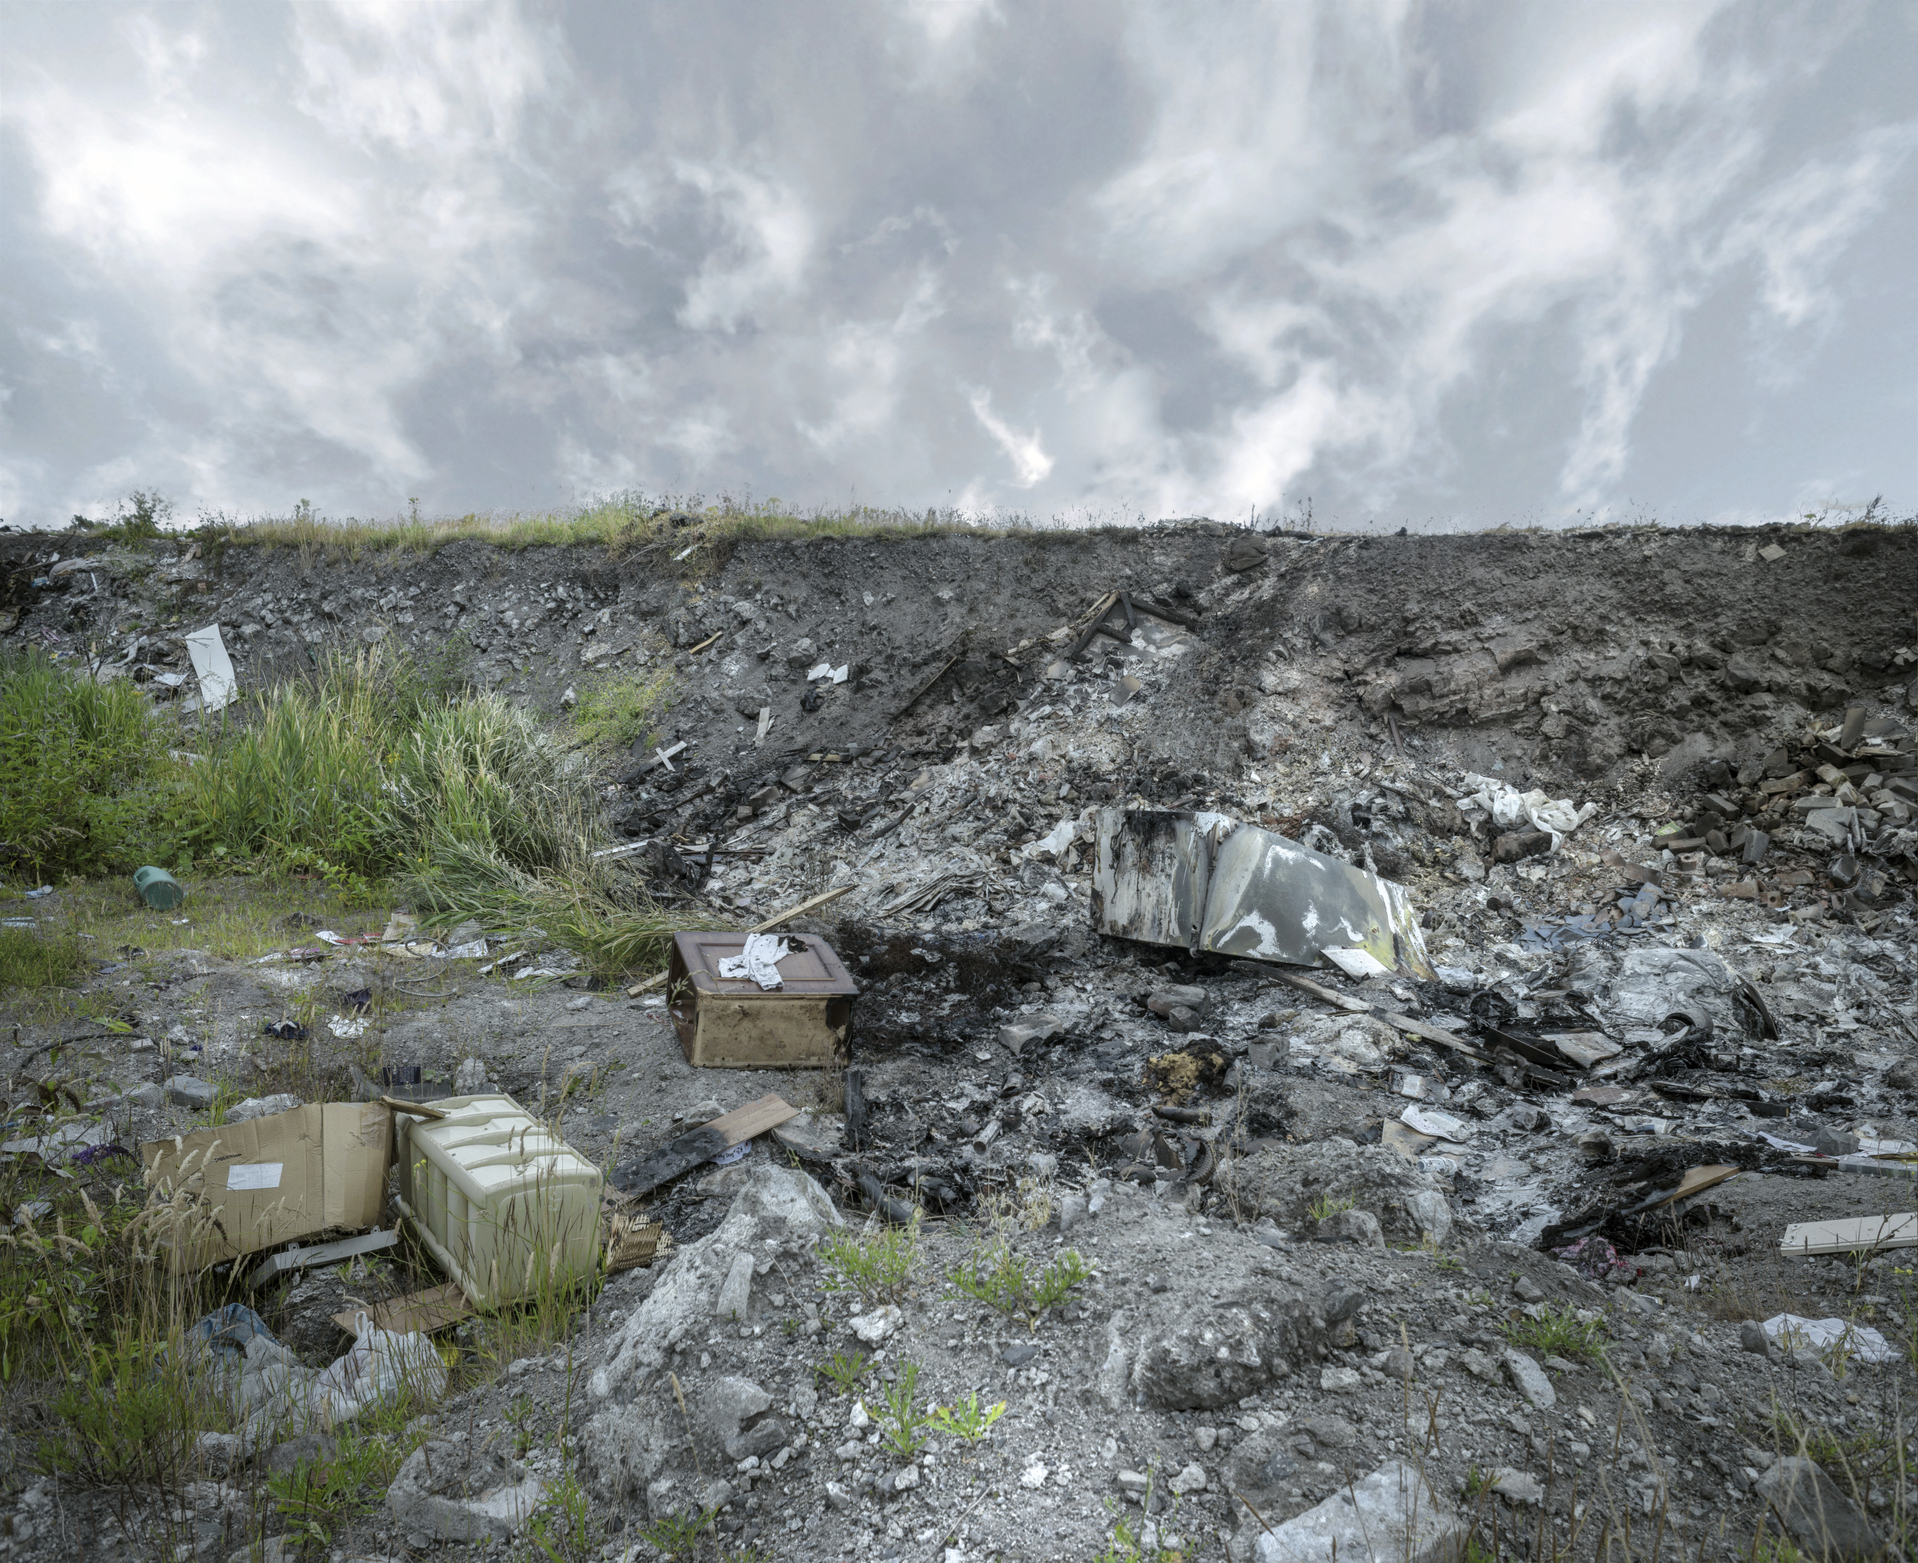 photo of land pollution